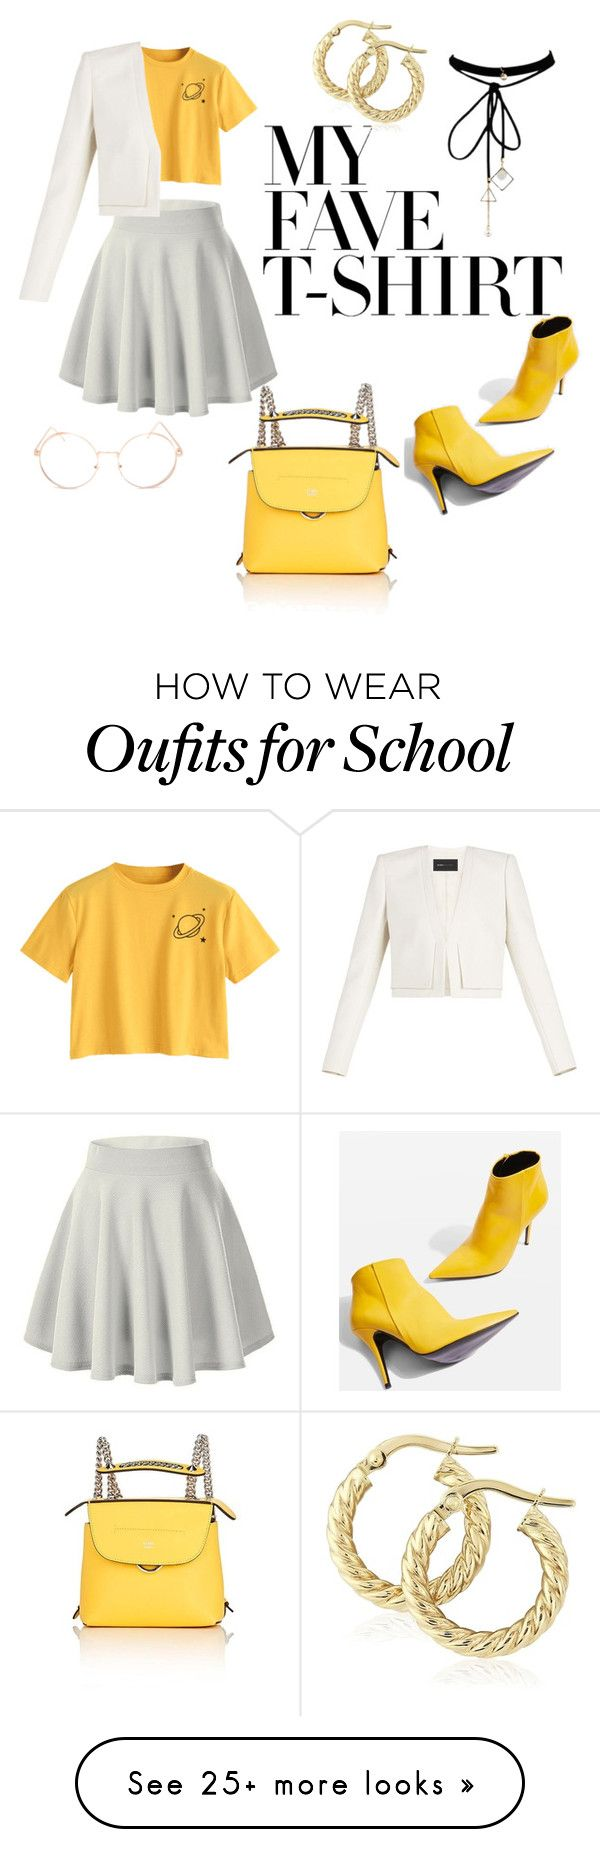 """""""dress up a t-shirt"""" by paige-kendall on Polyvore featuring Topshop, BCBGMAXAZRIA, Fendi, Full Tilt and MyFaveTshirt"""